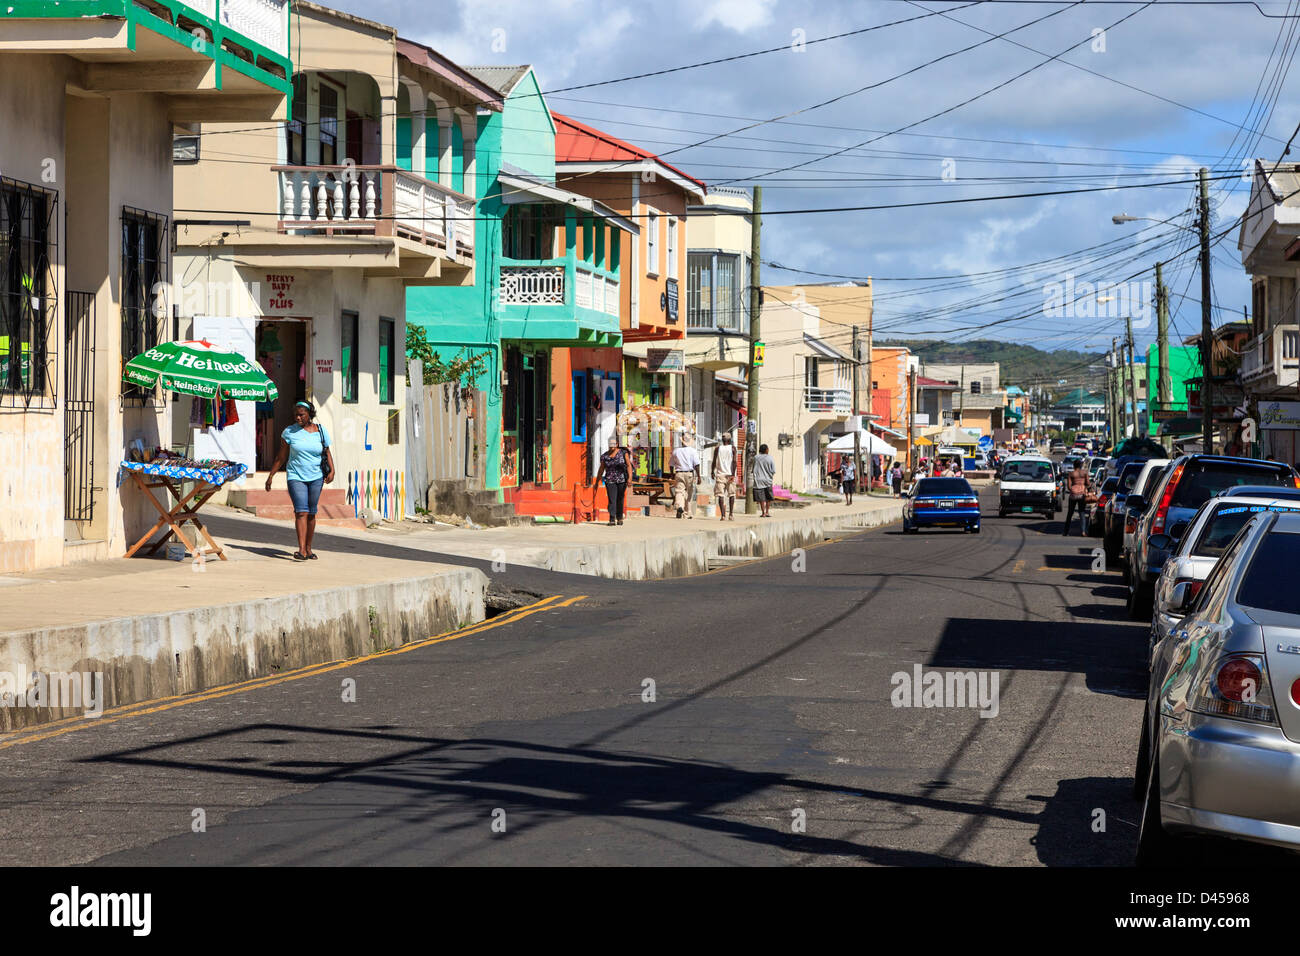 View along Clark Street, Vieux Fort, St Lucia. Clark Street is the main thoroughfare in the town - Stock Image